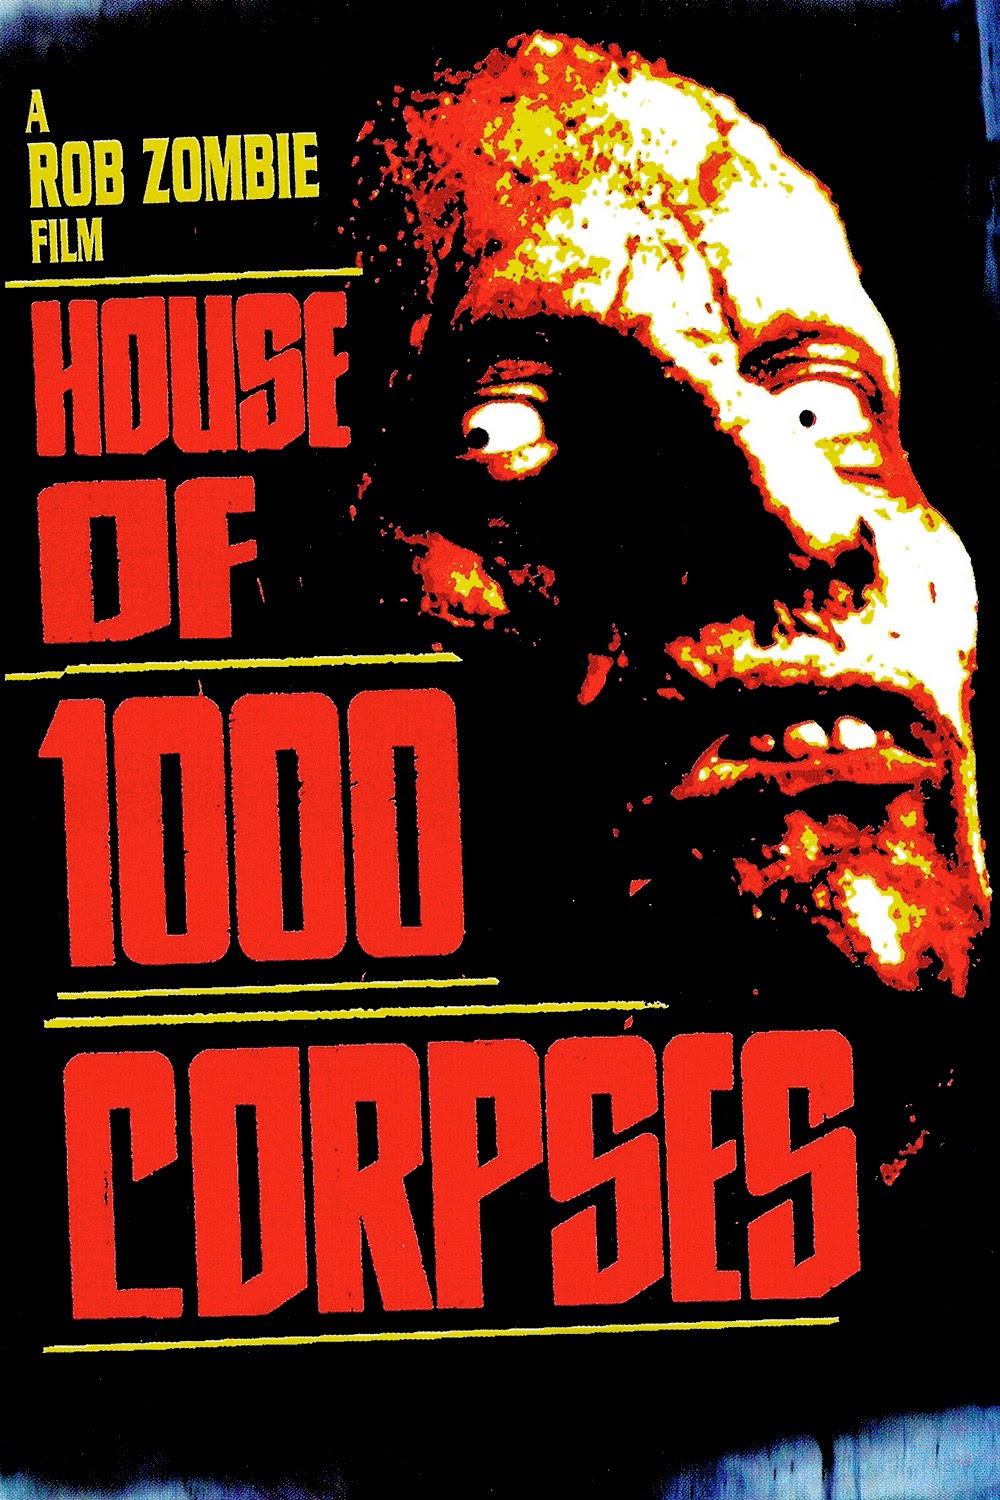 House of 1000 Corpses 2003 - Full (HD)